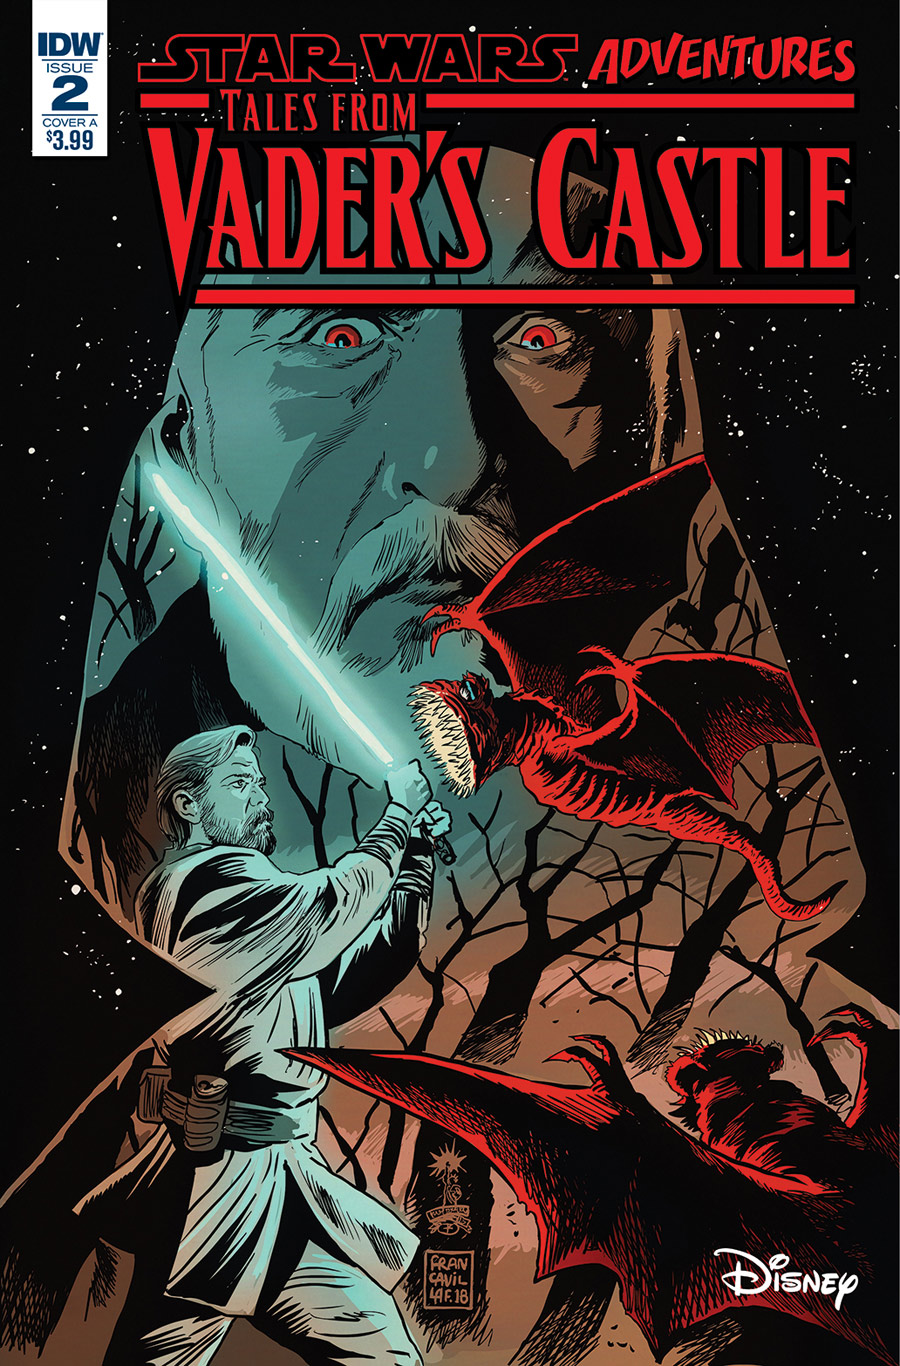 Tales from Vader's Castle #2 cover.